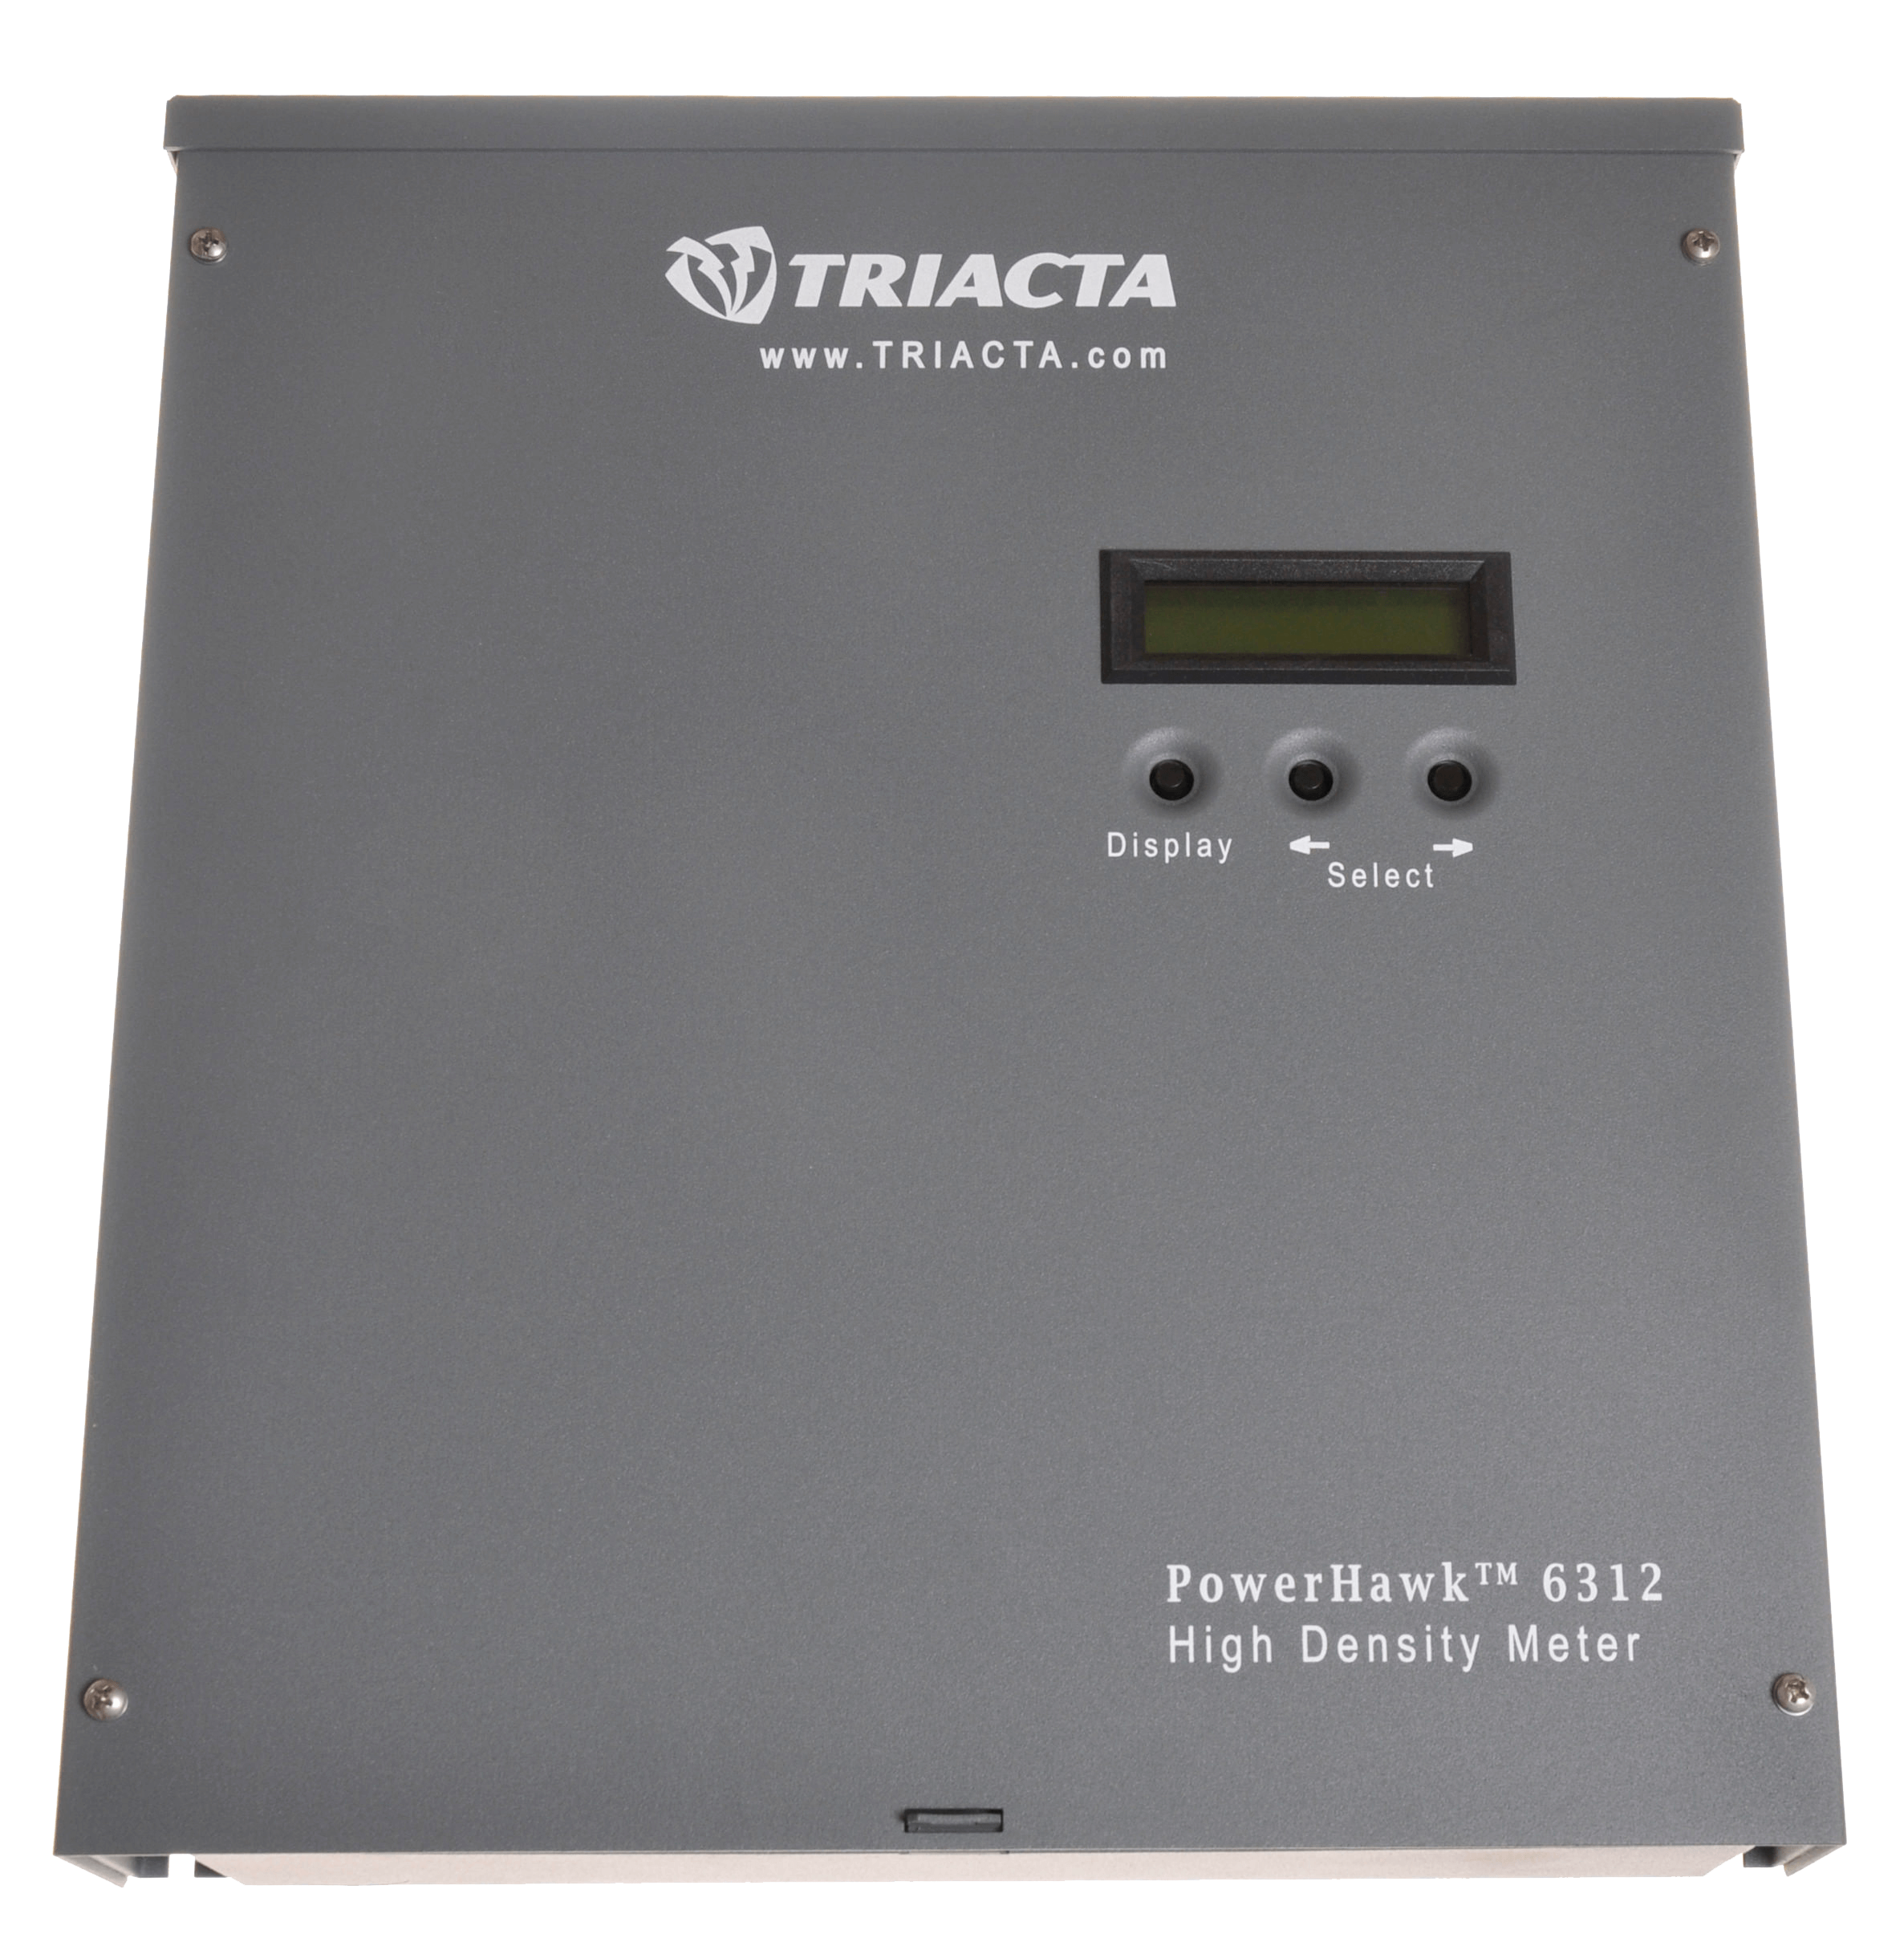 Triacta PowerHawk 6312 Electrical Submeter